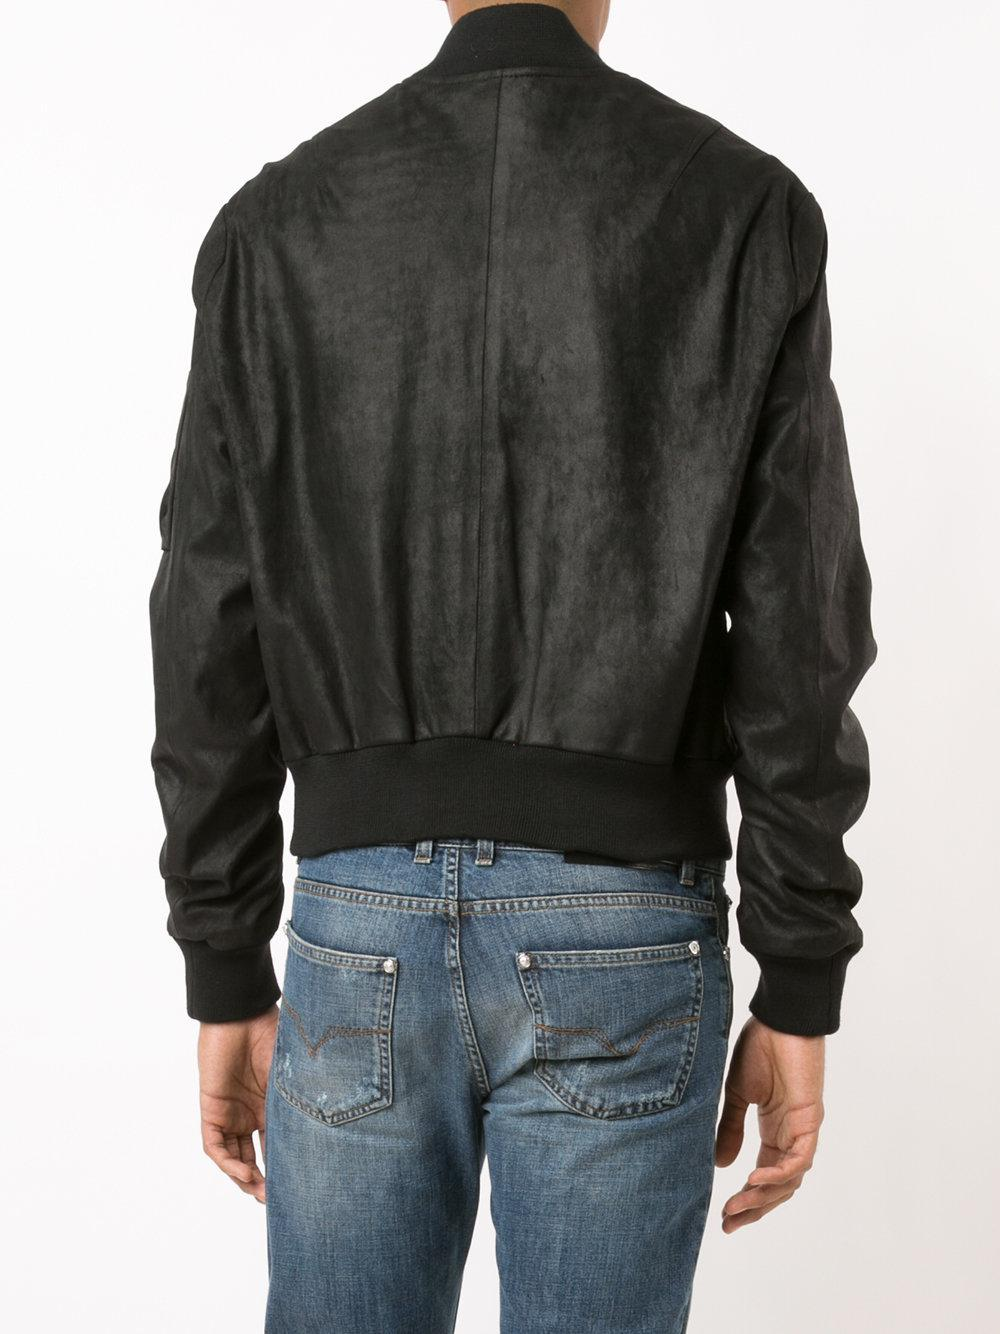 RTA Leather Chained Zipper Bomber Jacket in Black for Men